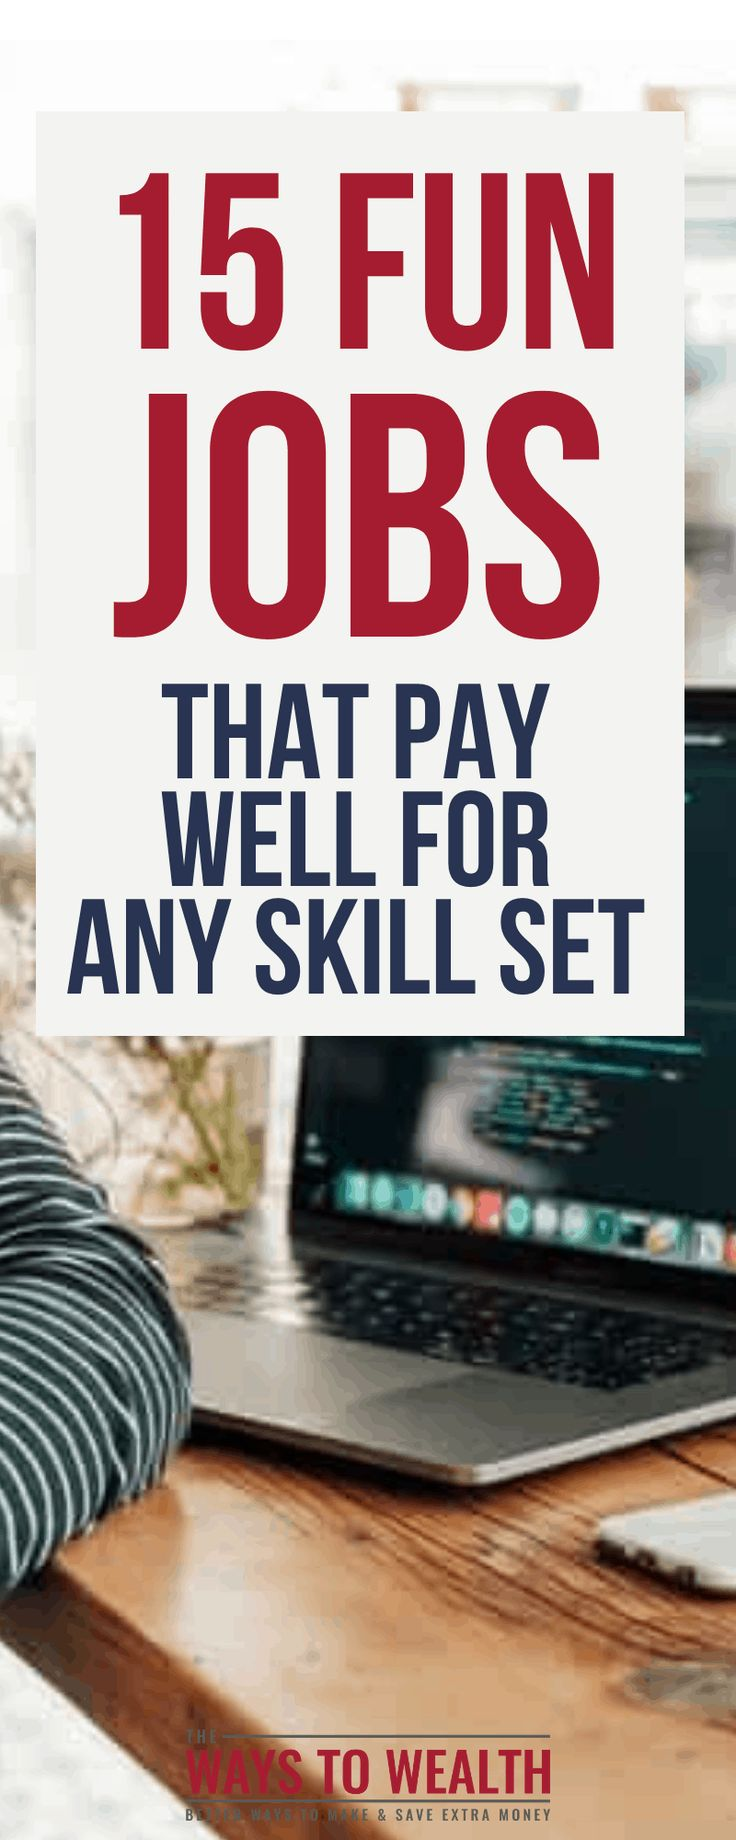 15 Fun Jobs That Pay Well for Any Skill Set Good job